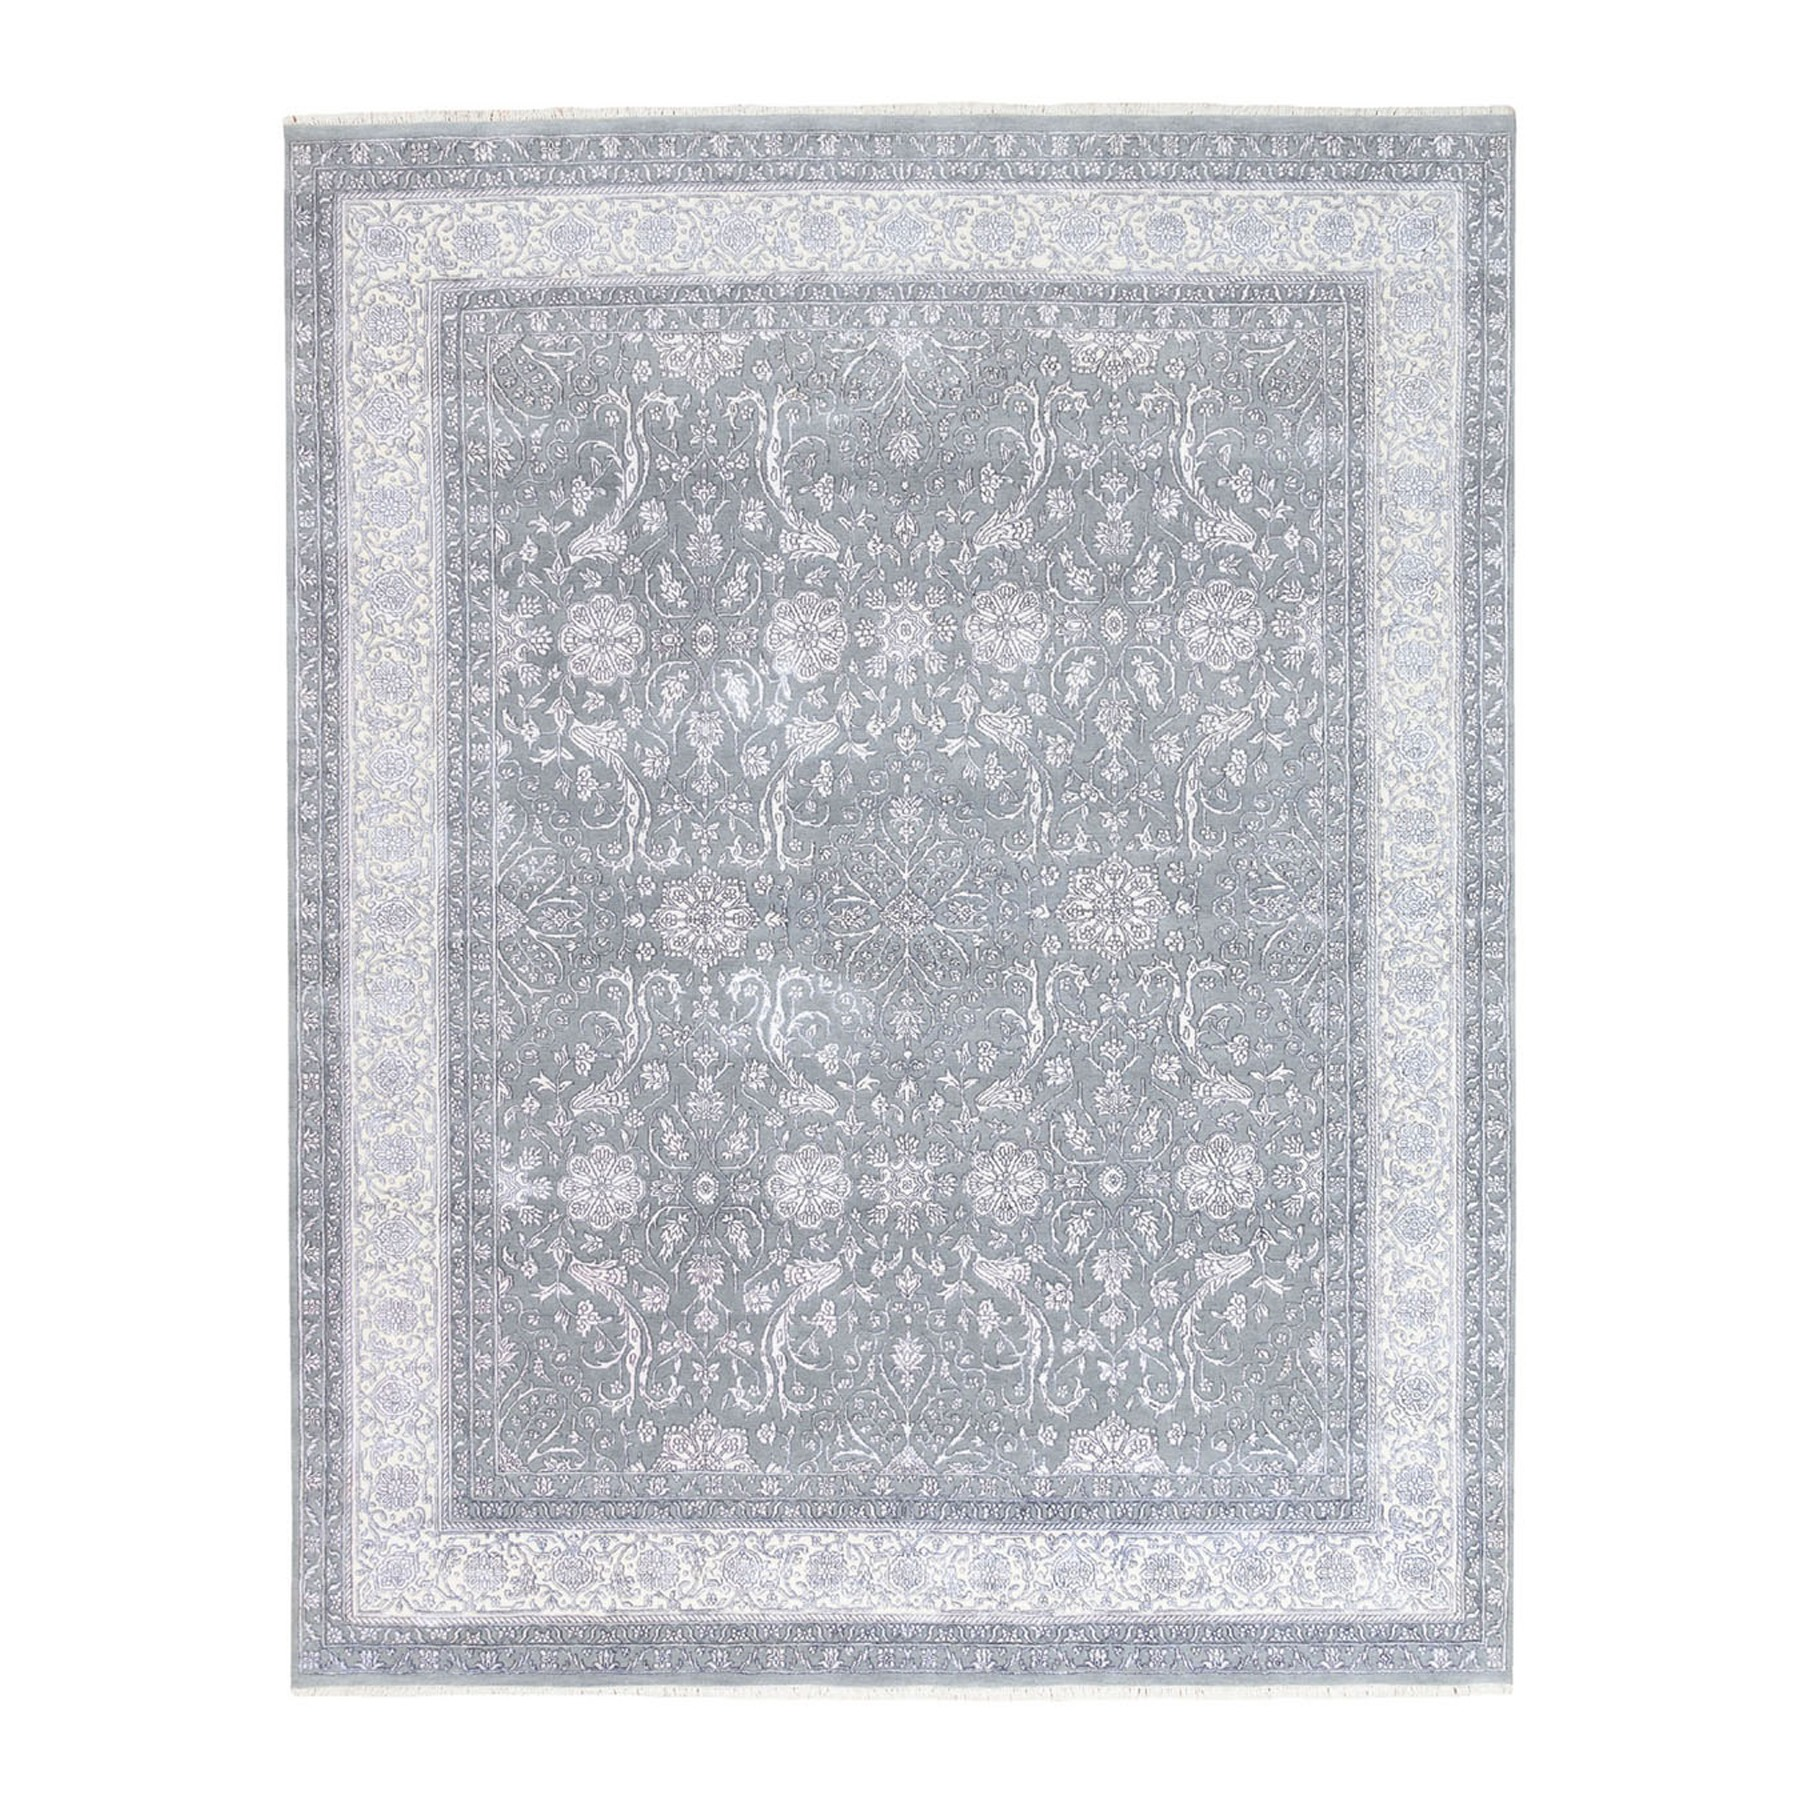 Traditional Rugs LUV560169